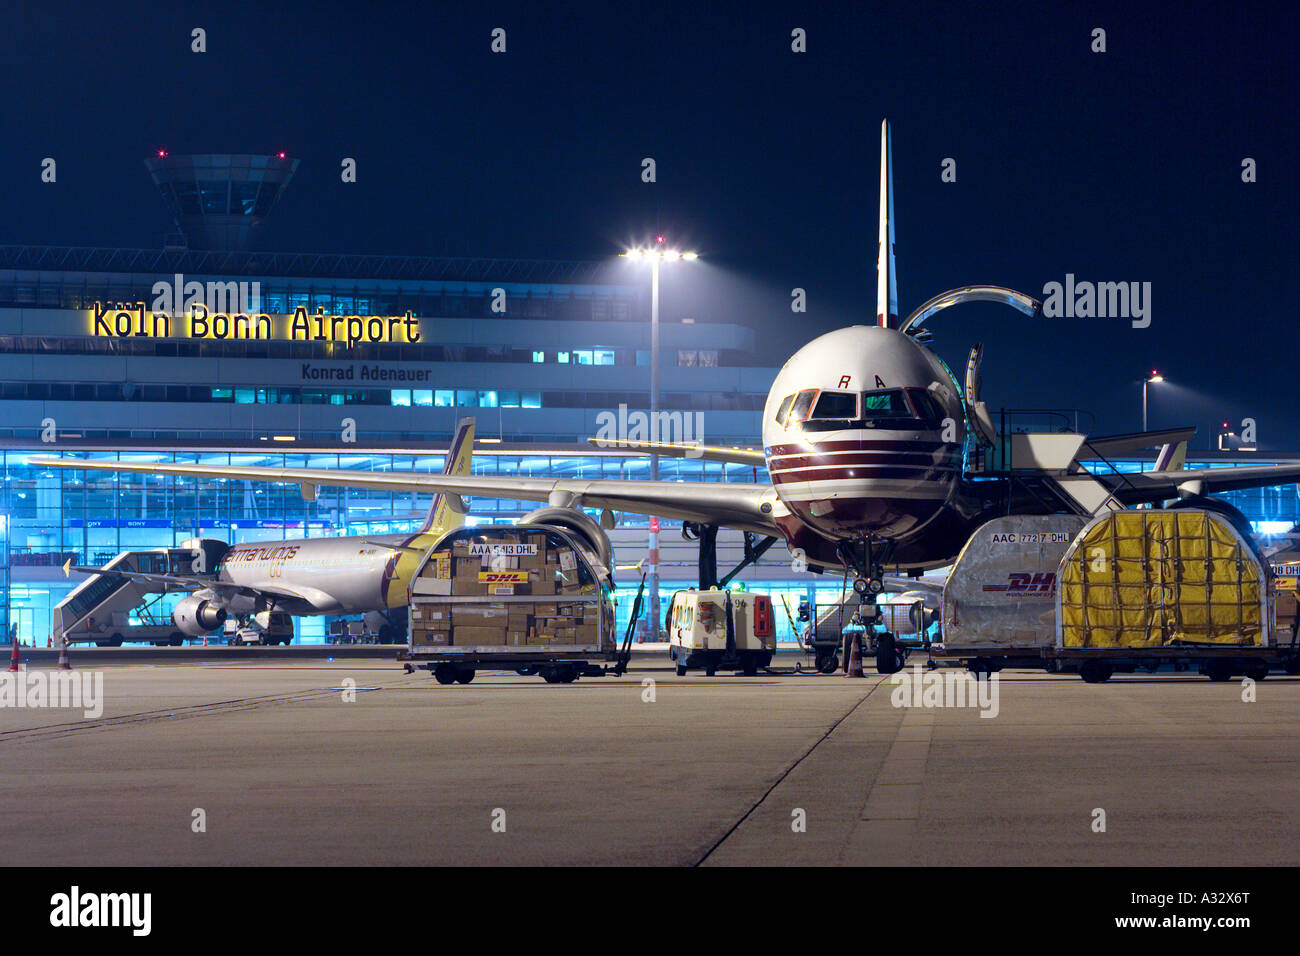 a dhl cargo plane at the cologne bonn airport at night germany stock photo 10652399 alamy. Black Bedroom Furniture Sets. Home Design Ideas